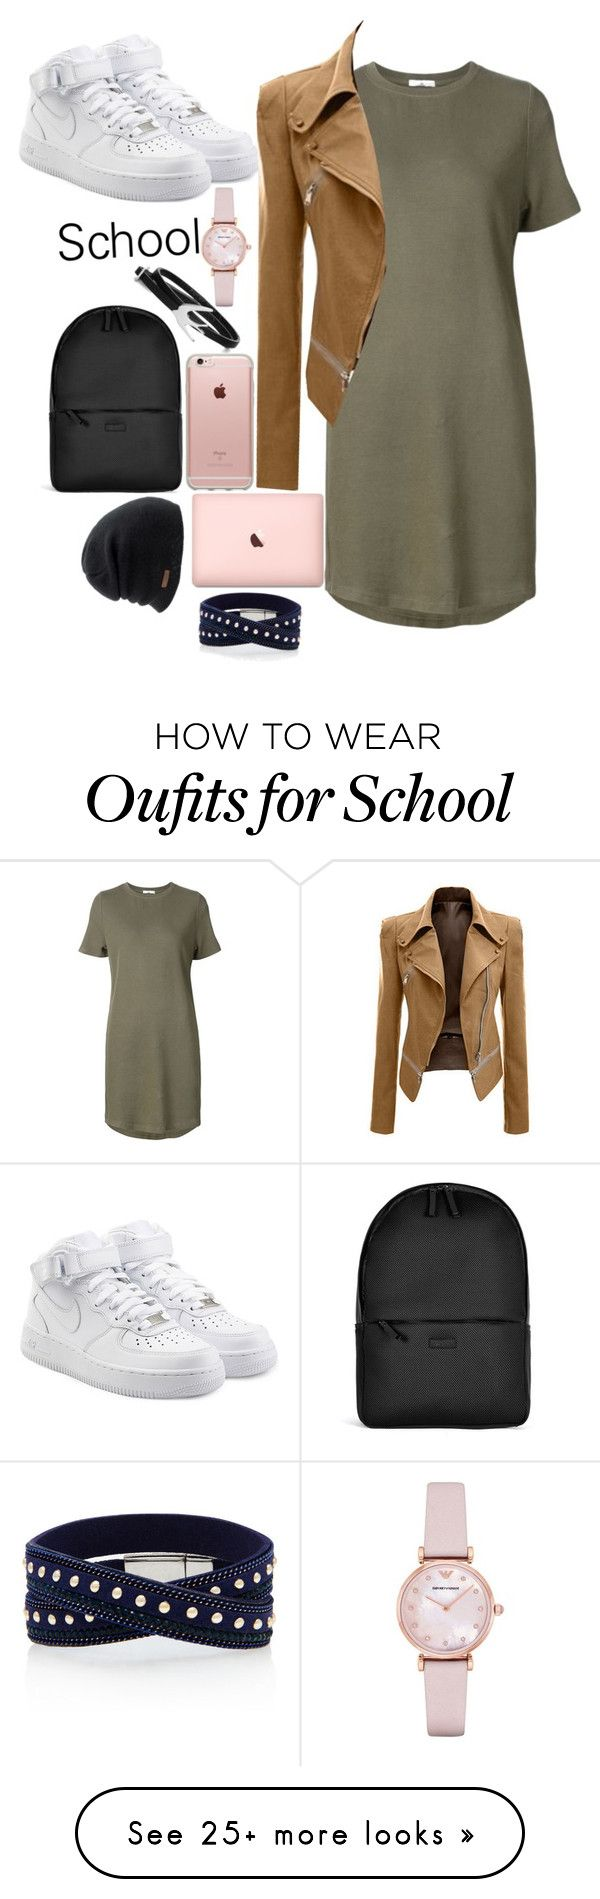 """School days"" by smokeylovebae on Polyvore featuring 321, NIKE, Incase, Rains, Coal, Emporio Armani and McQ by Alexander McQueen"